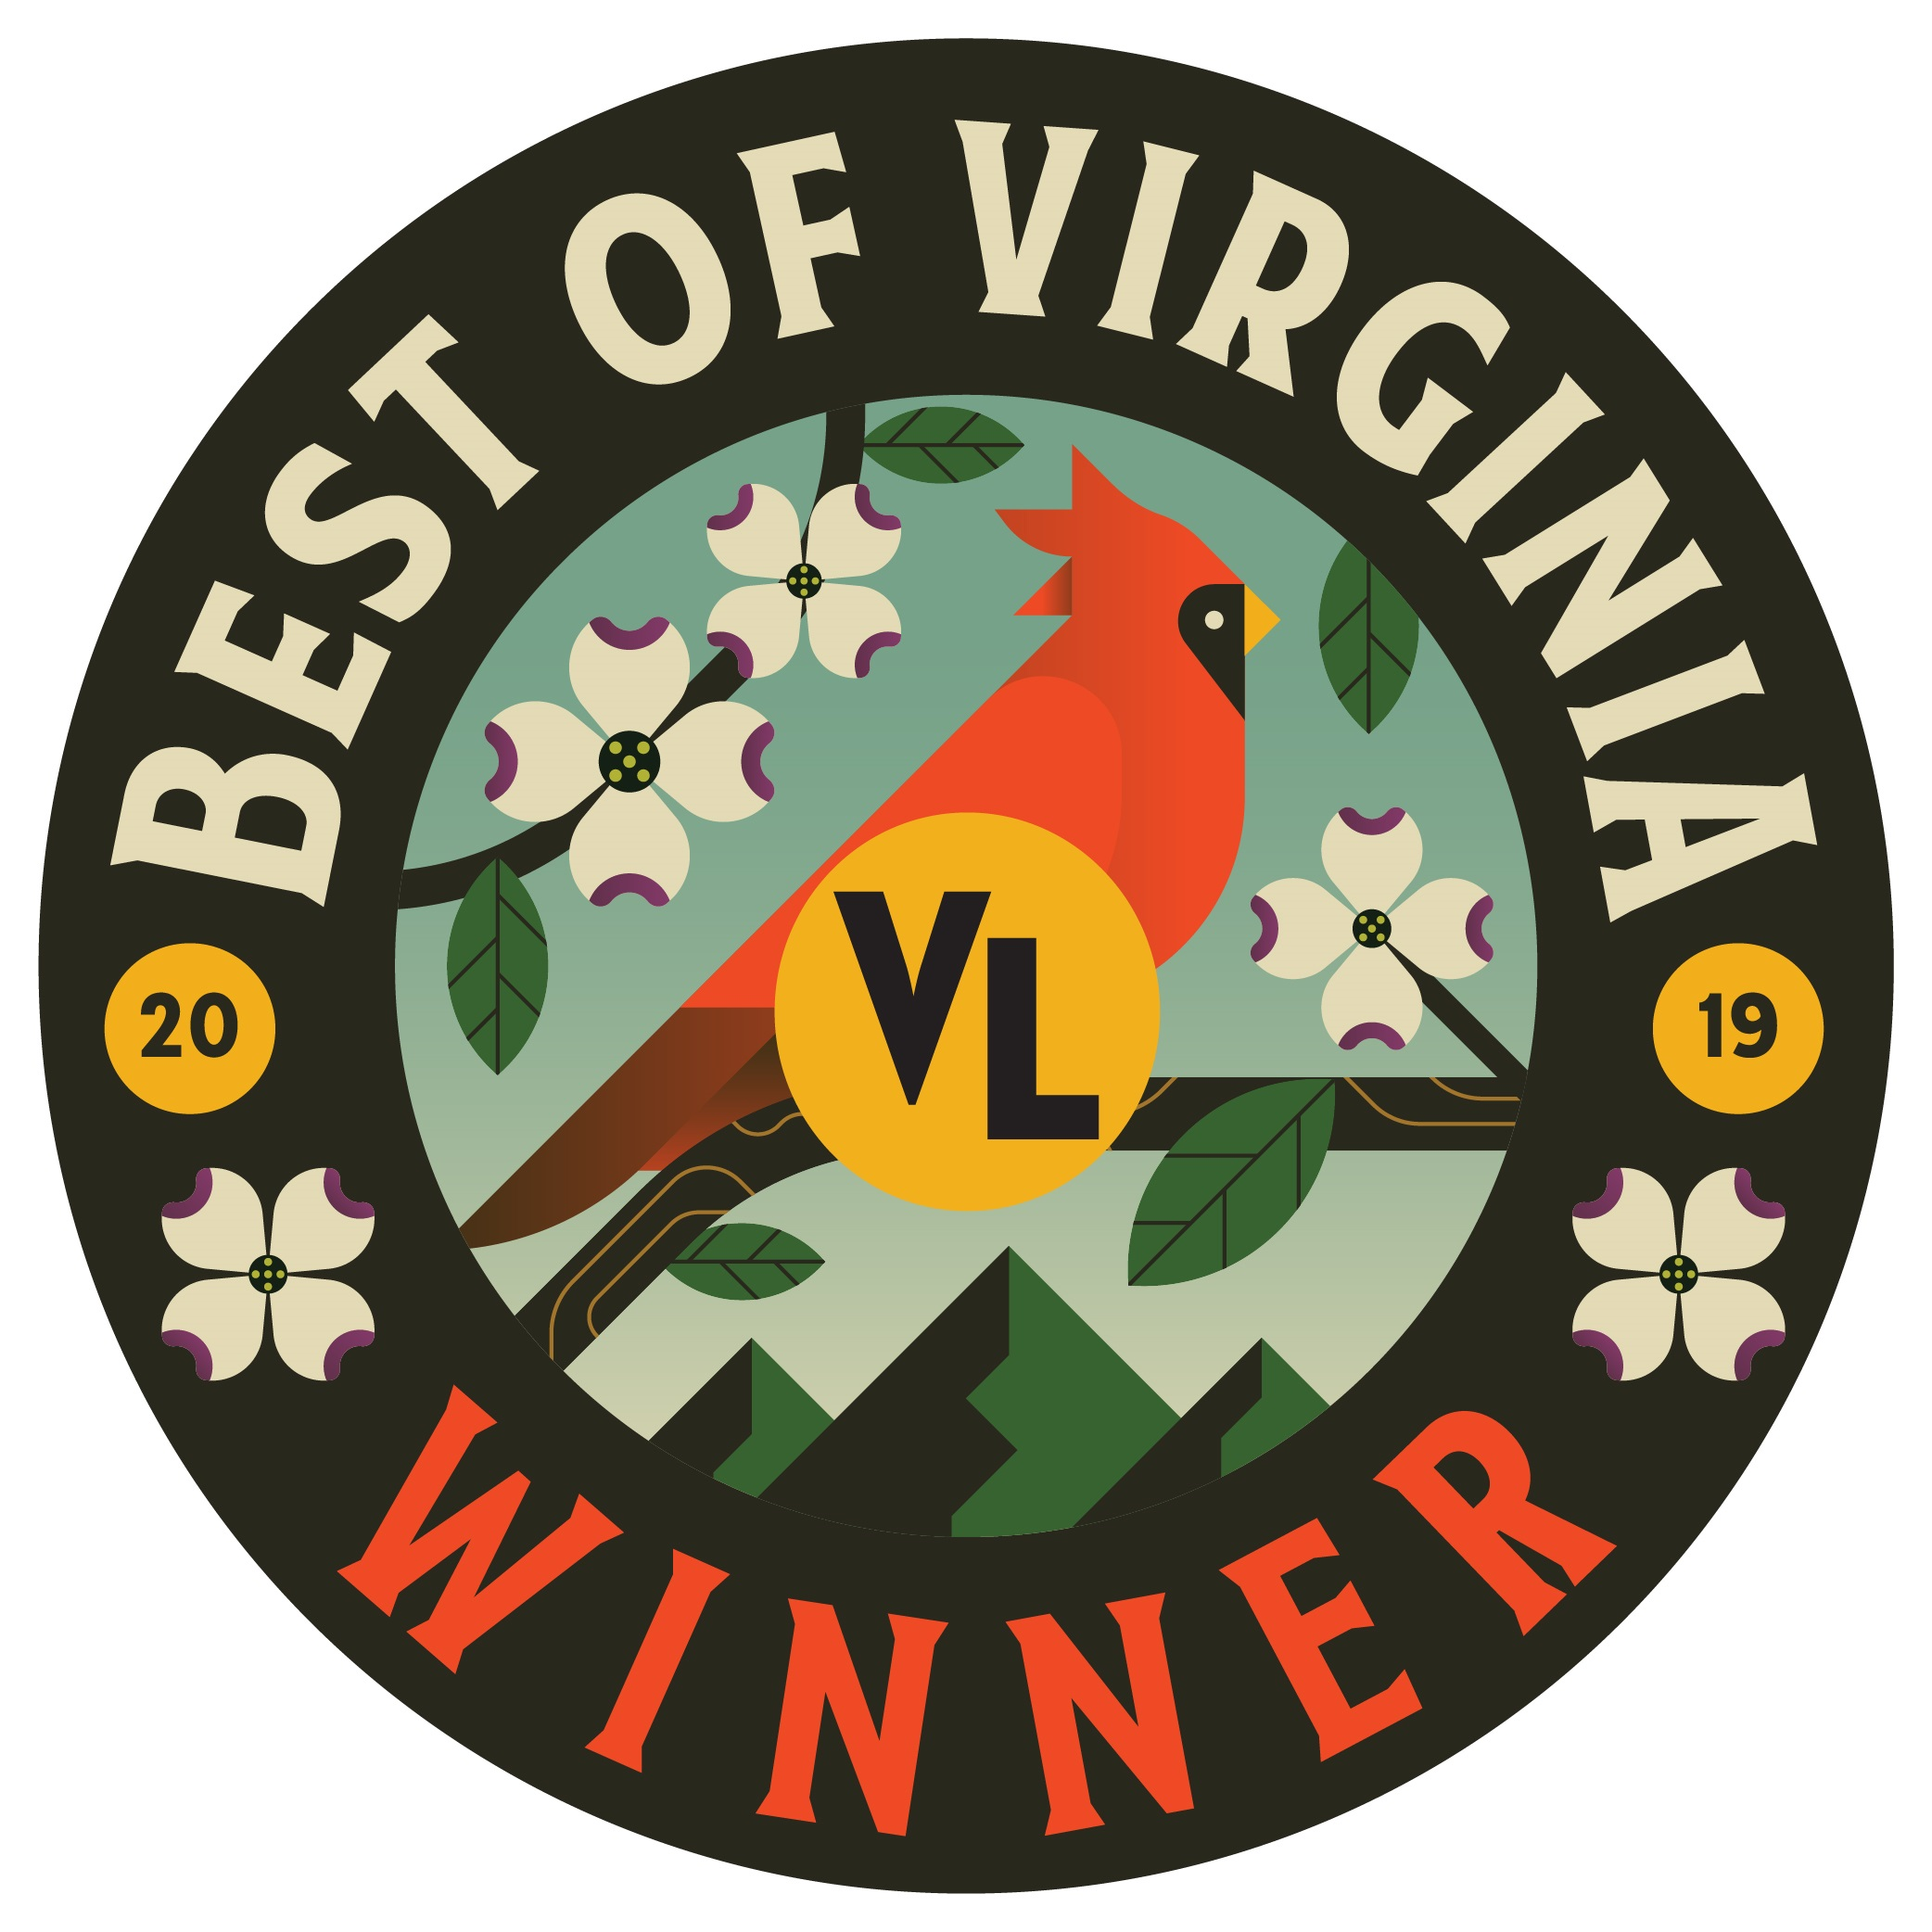 Virginia Living Magazine's Best of 2019 - VA Living Magazine asked, and you all answered! Thank you for everyone that voted for us and support our efforts and passions. We are honored to receive:1st - Best Dessert1st - Best Seafood1st - Best Bed & Brekfast2nd - Best Outdoor Dining2nd - Best Brunch